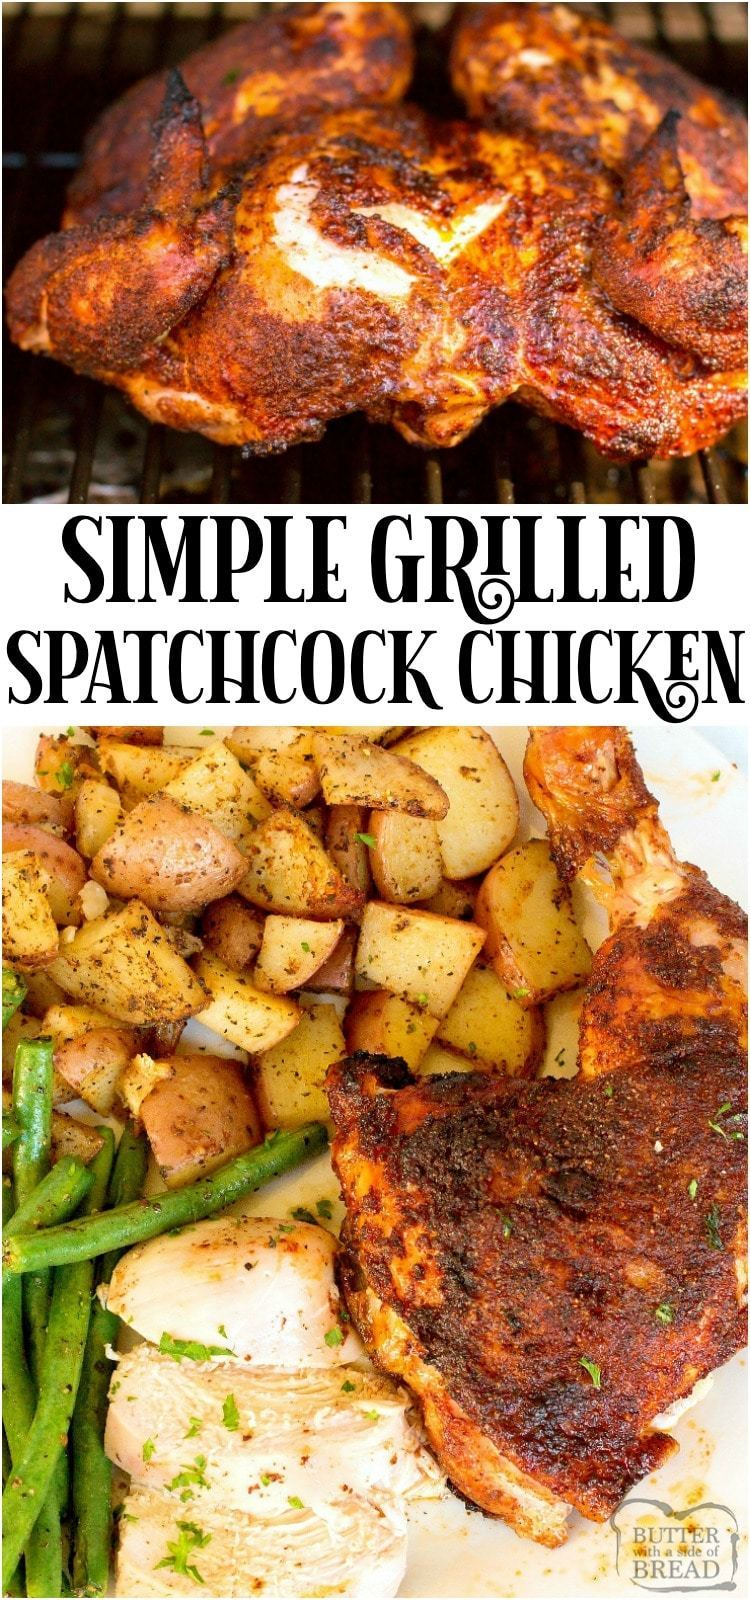 Grilled Spatchcock Chicken Recipe for tender, flavorful chicken that cooks evenly! Shows how to spatchcock a chicken & why it delivers moist chicken with incredible flavor. #spatchcock #chicken #grilling #grilledchicken #bbq #chicken #recipe #dinner from BUTTER WITH A SIDE OF BREAD